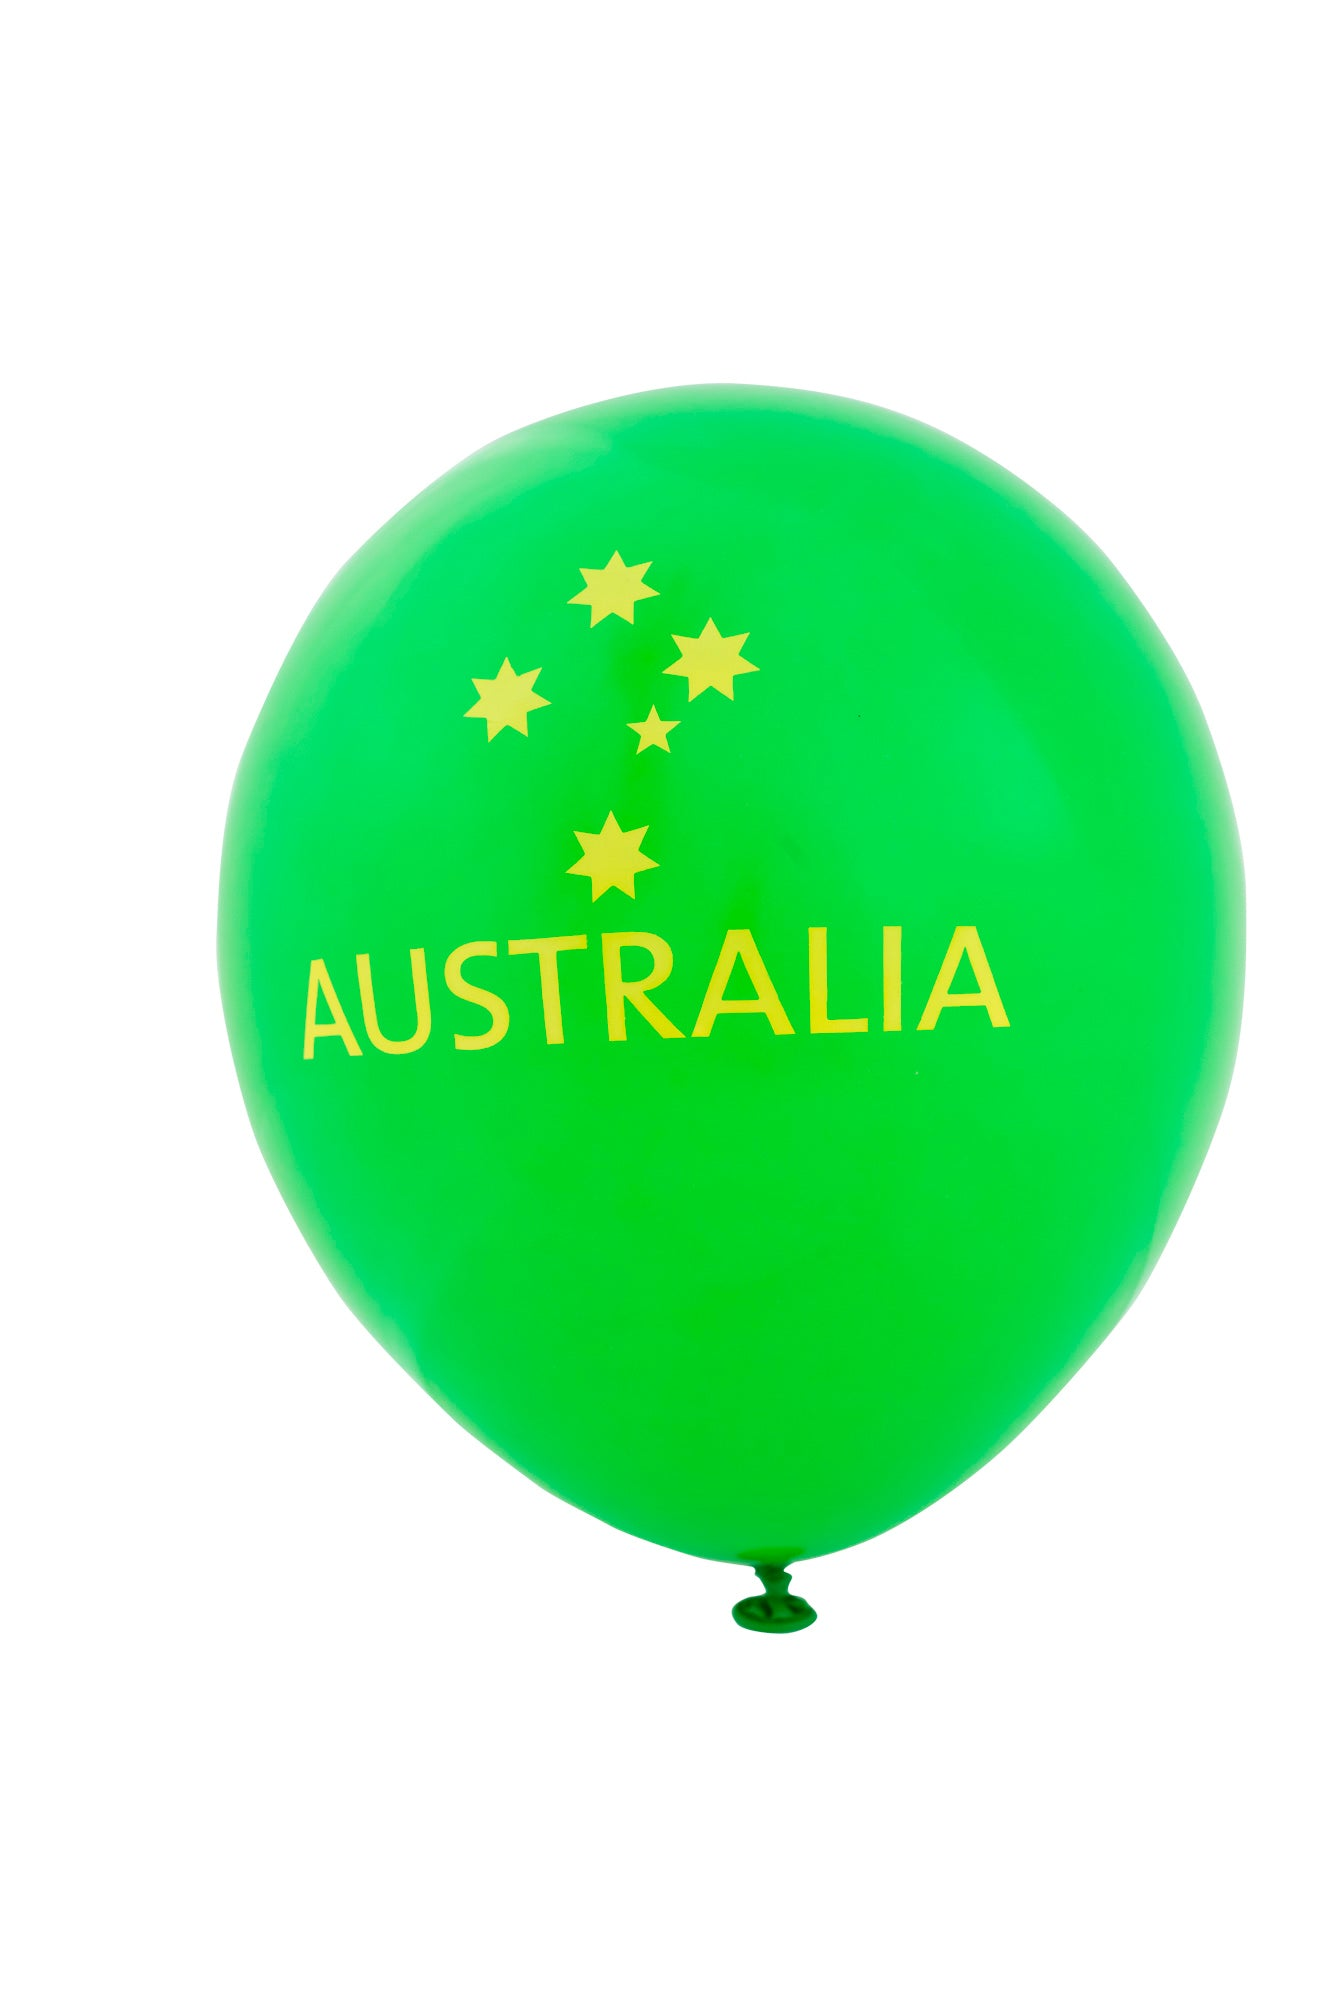 Australia Balloons- Southern Cross Green and Gold